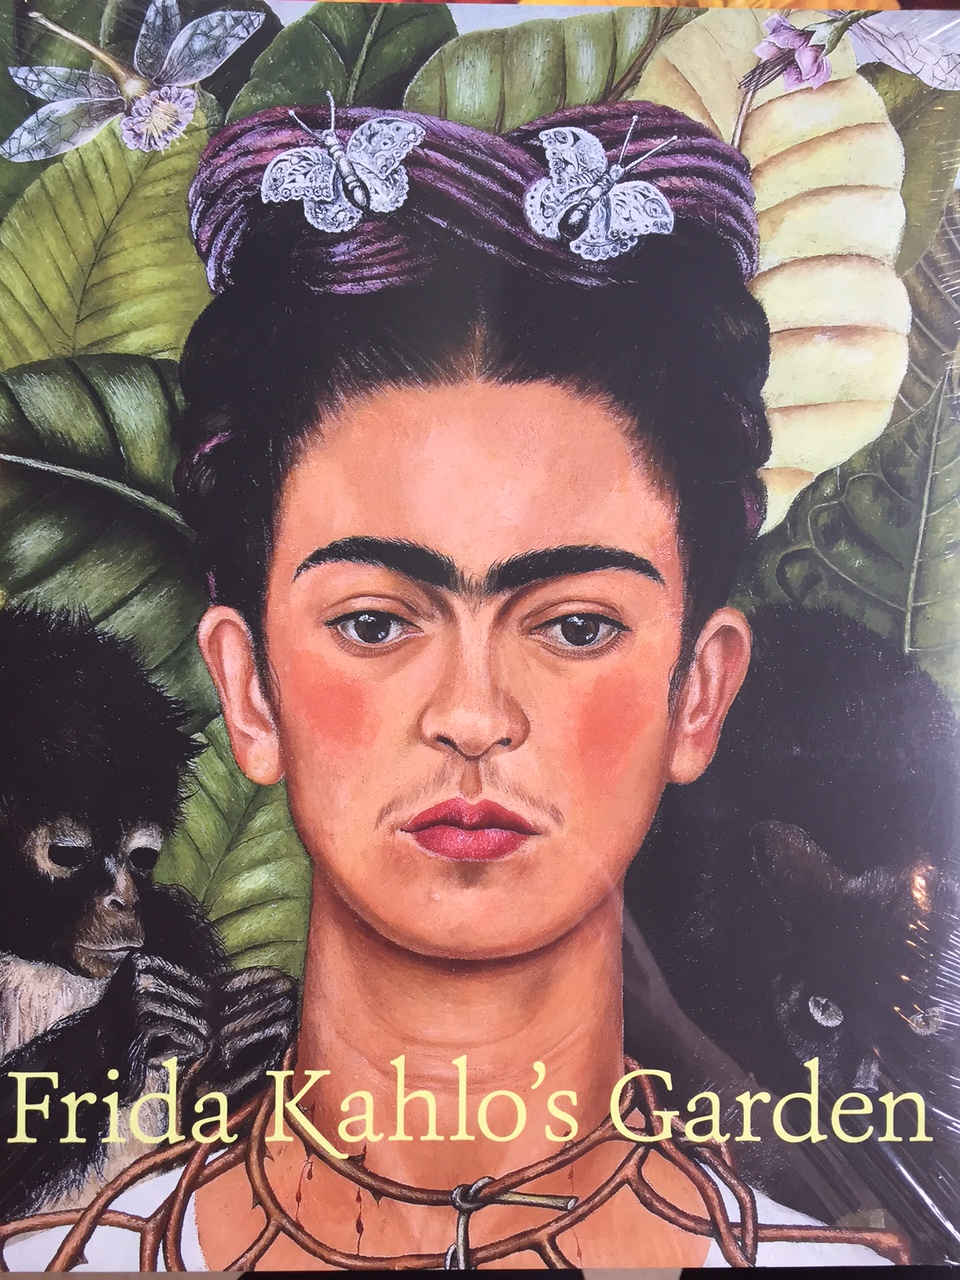 """I WAS BORN A BITCH. I WAS BORN A PAINTER."" - FRIDA KAHLO"